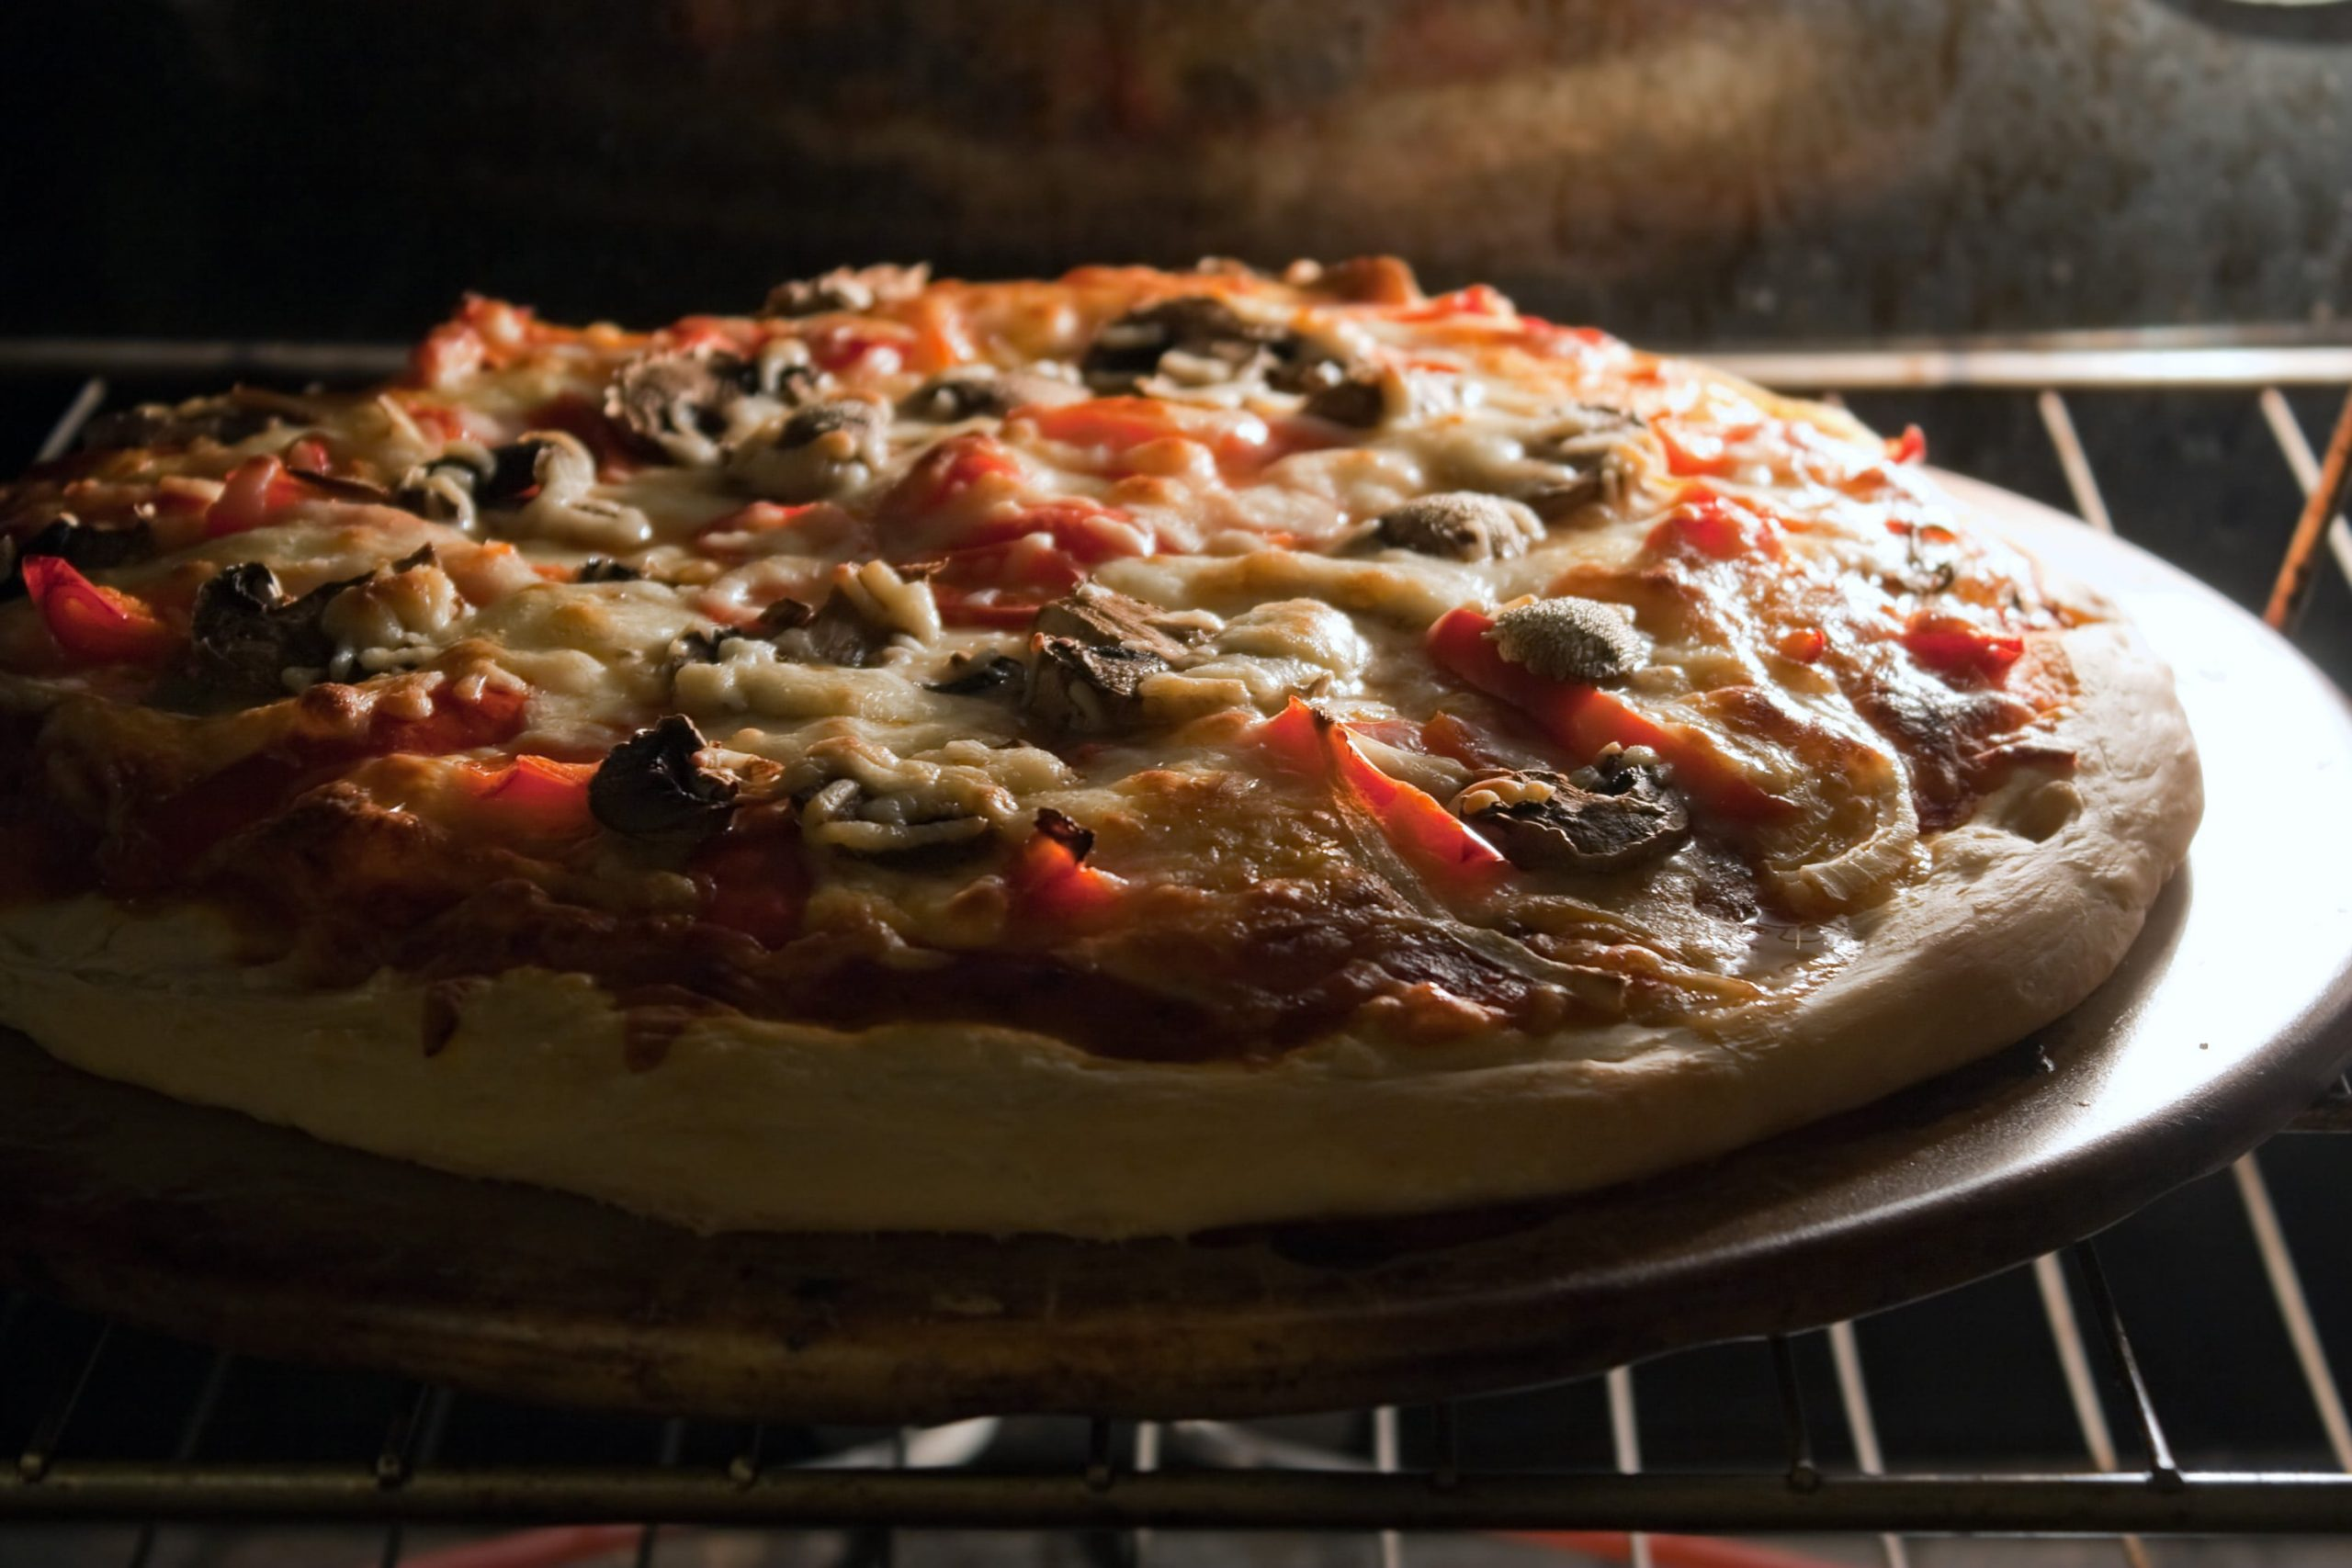 a-fresh-homemade-mushroom-and-pepper-pizza-fresh-out-of-the-oven-and-ready-to-slice-shallow-depth-of-field